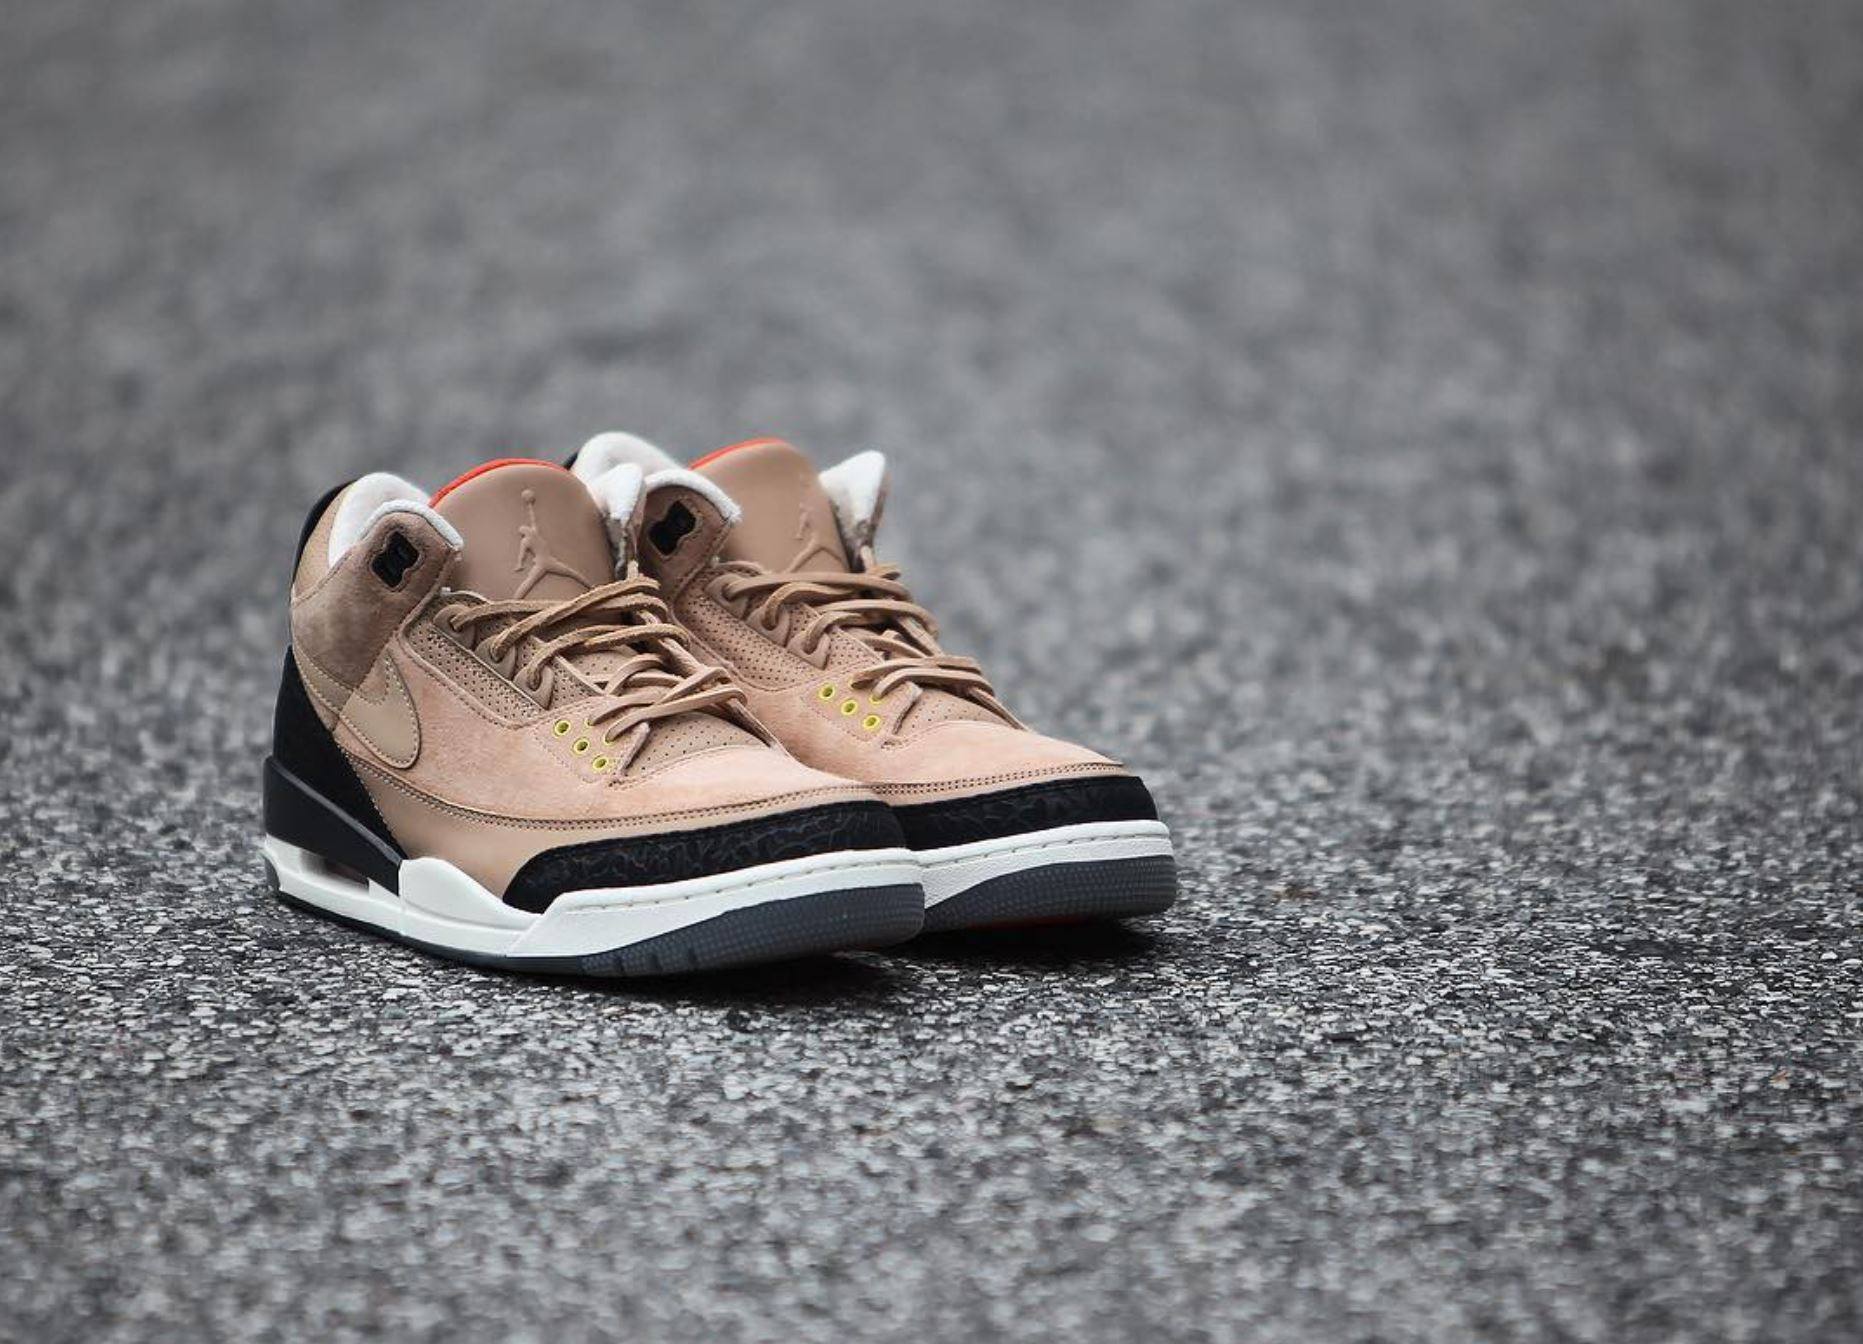 573285311ad96c air jordan 3 bio beige justin timberlake detailed look - WearTesters